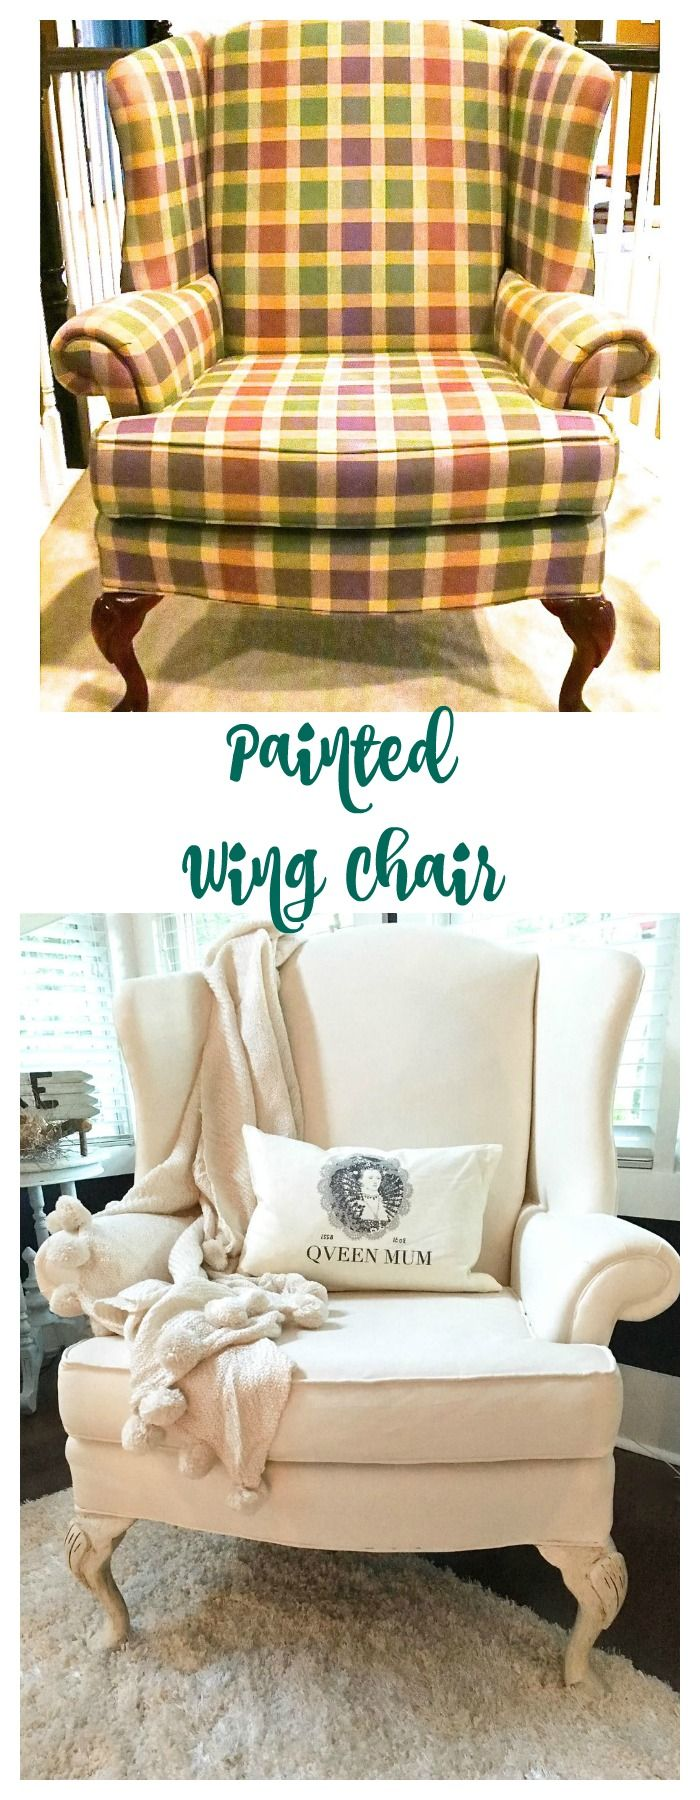 Painted Wing Chair. A great DIY project to paint the fabric of an old chair.